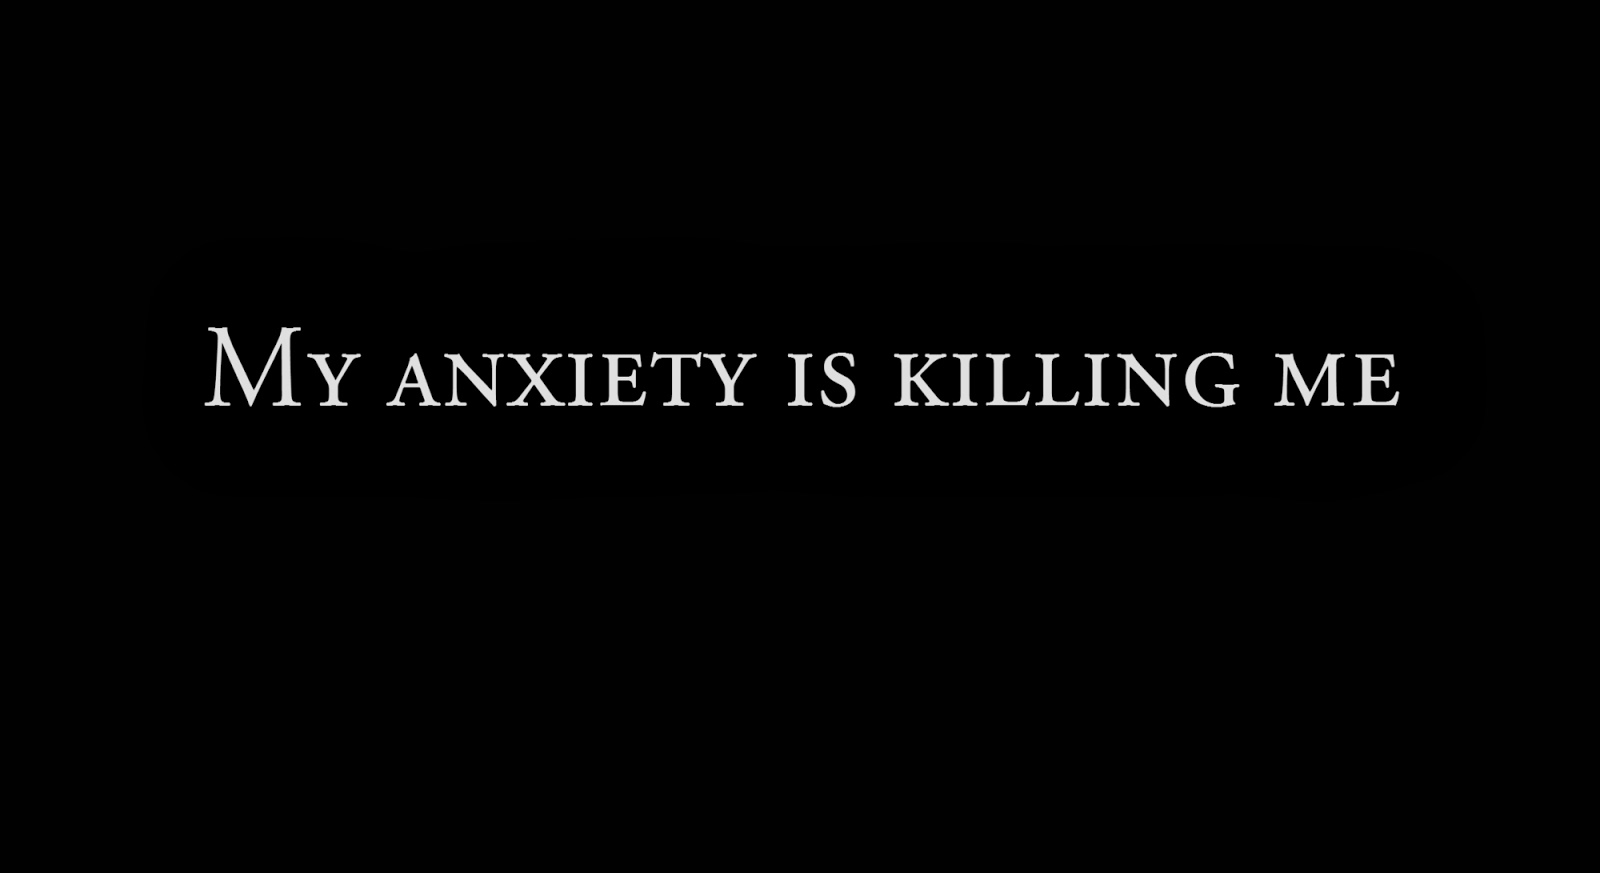 My anxiety is killing me